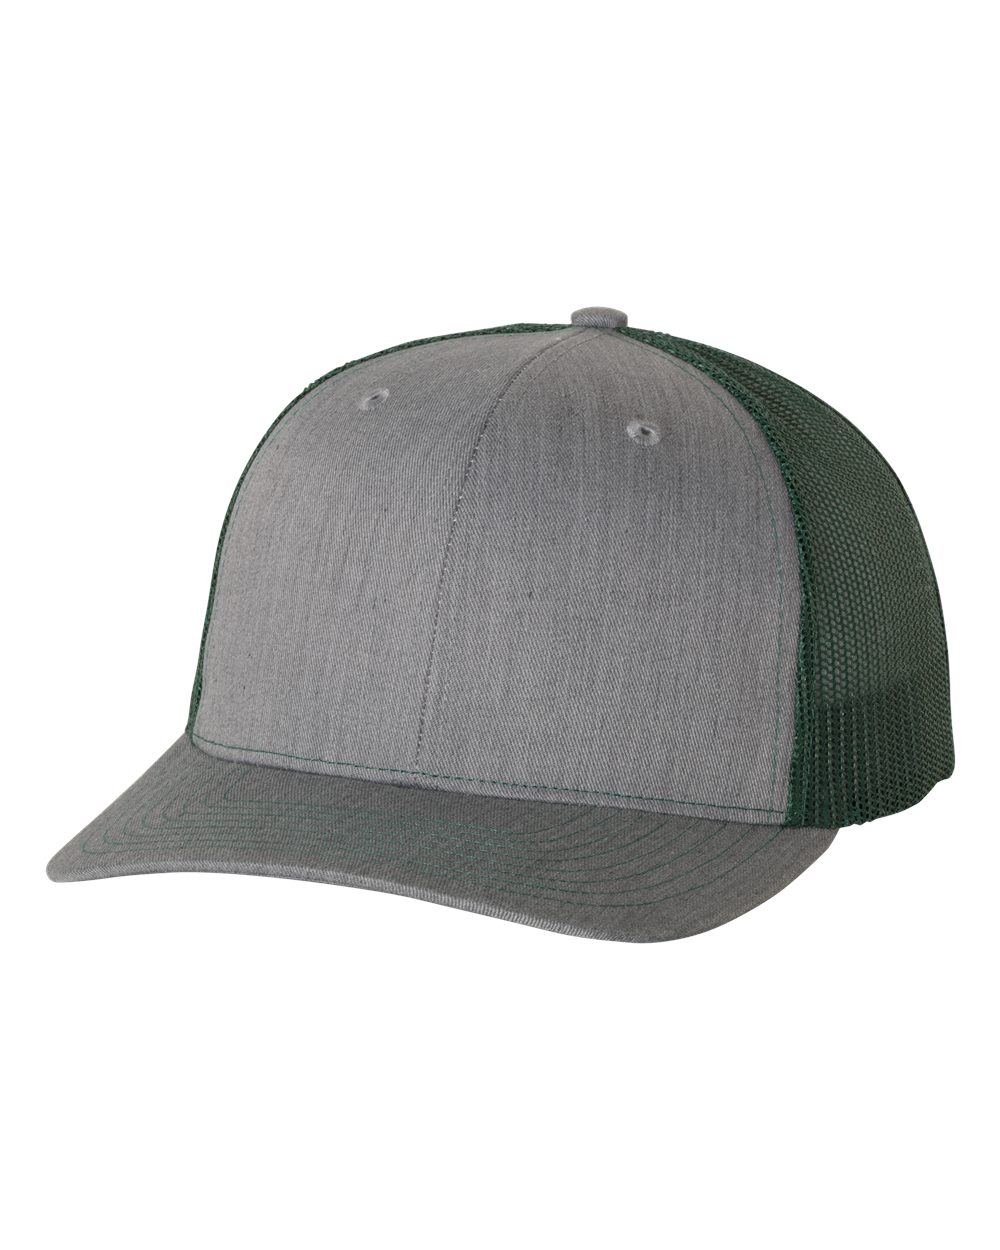 Heather Grey / Dark Green